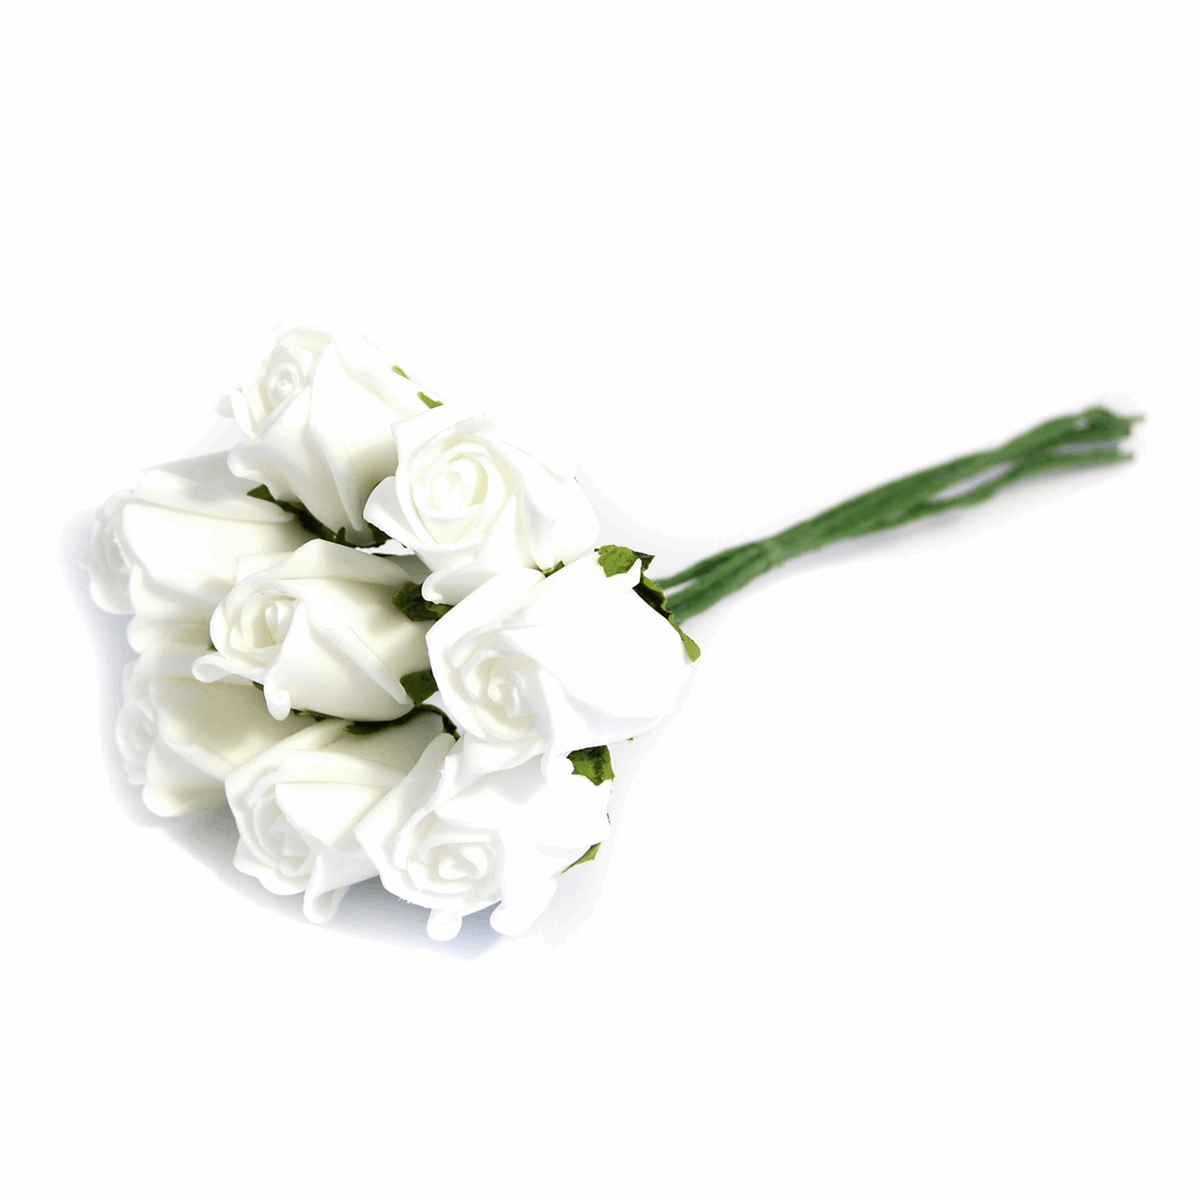 Picture of Flowers: Rose Buds: Polyfoam: Pack of 8: White